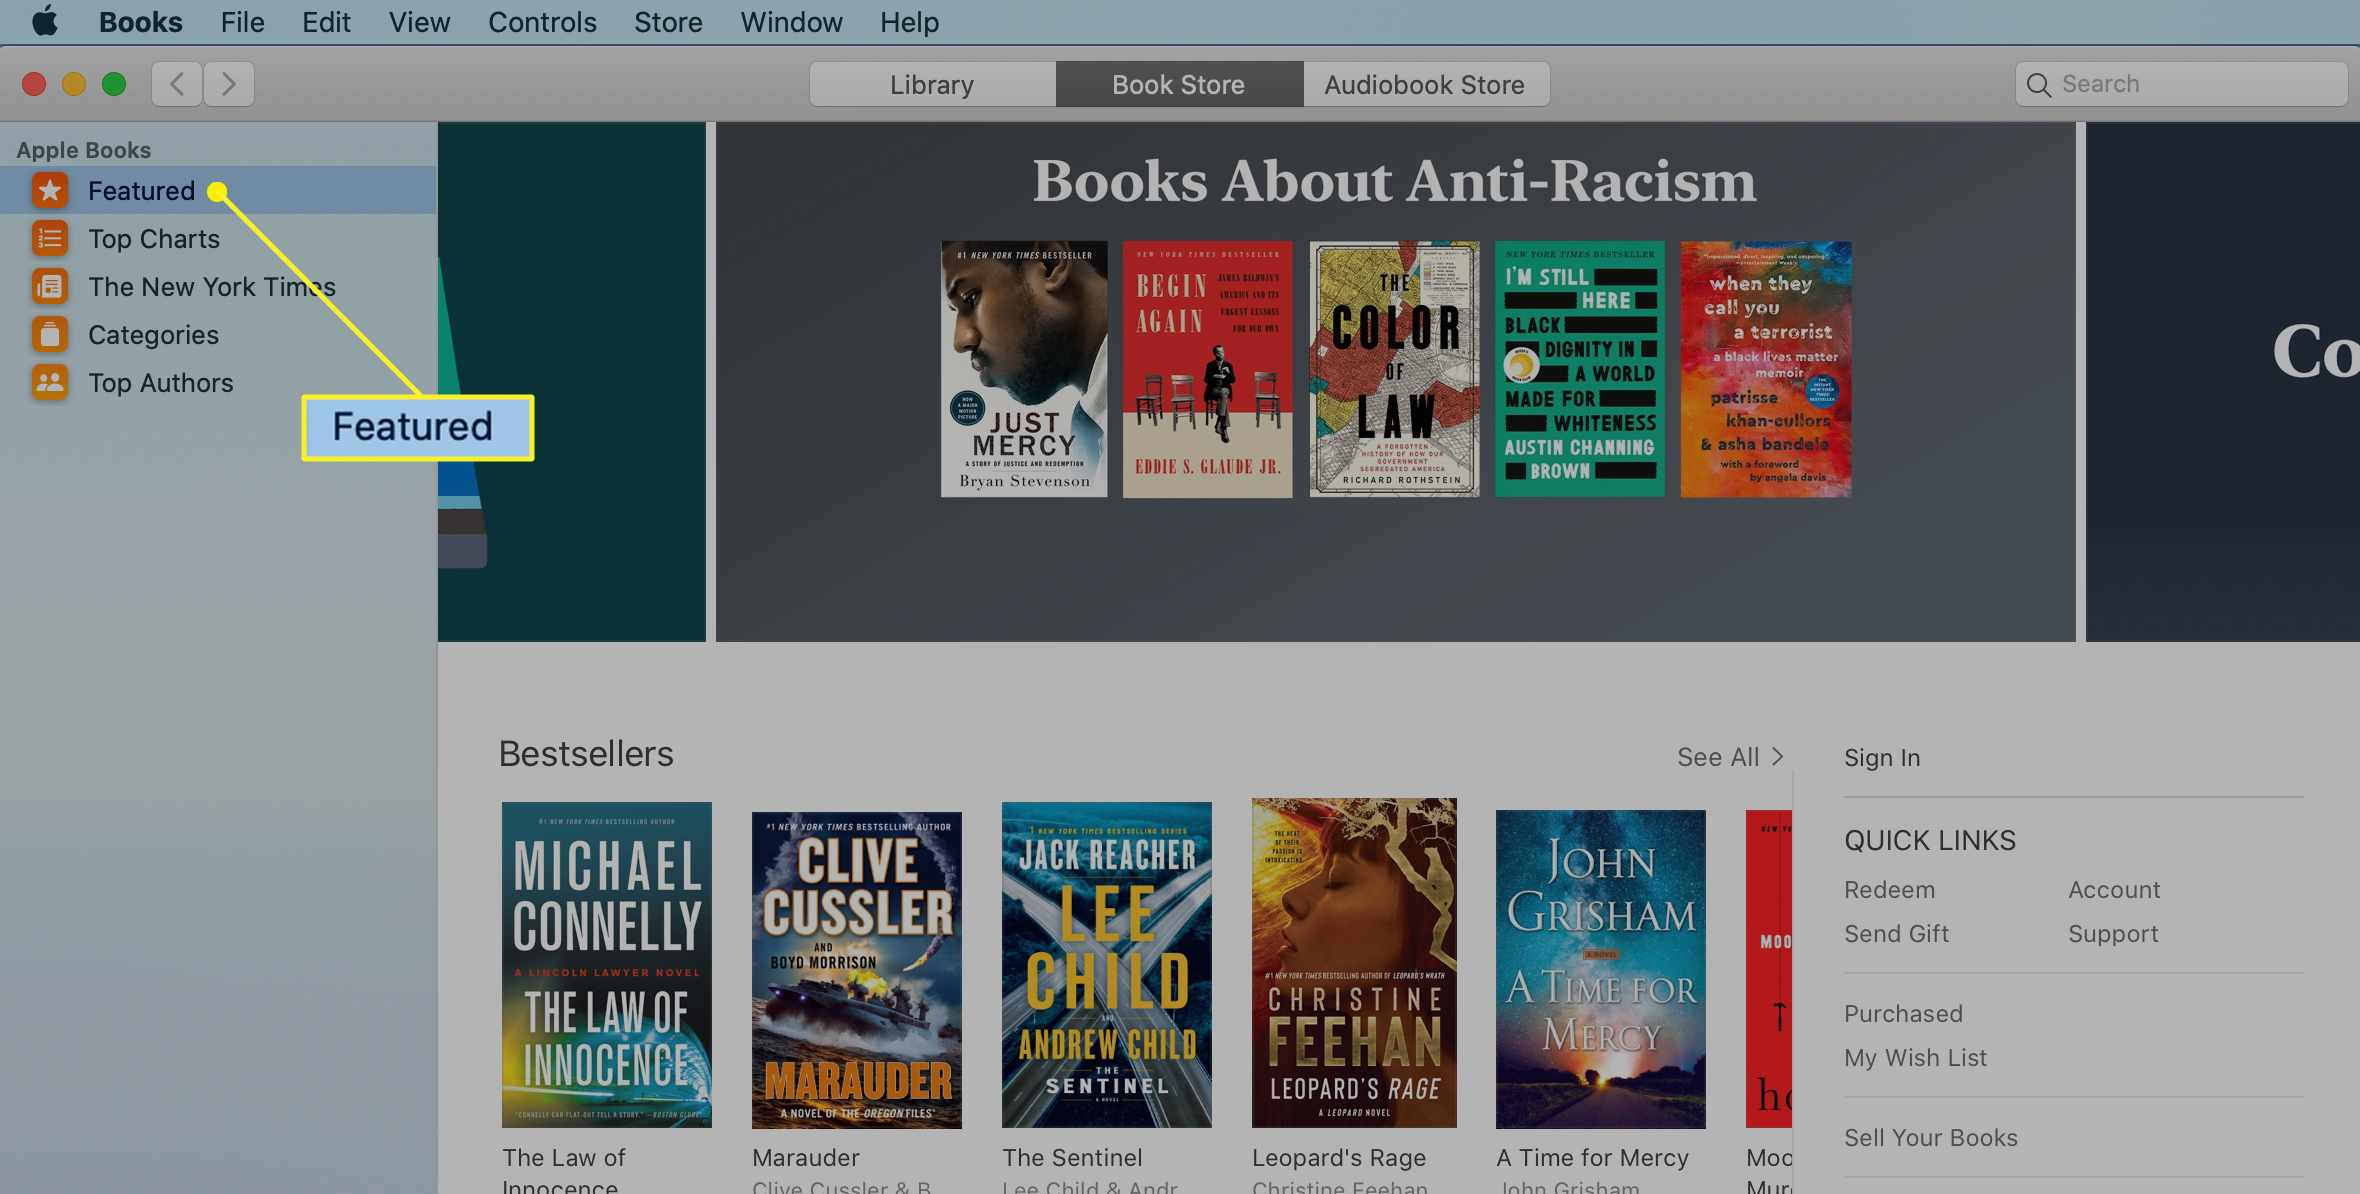 The Mac Music app with Featured selected in the Book Store tab